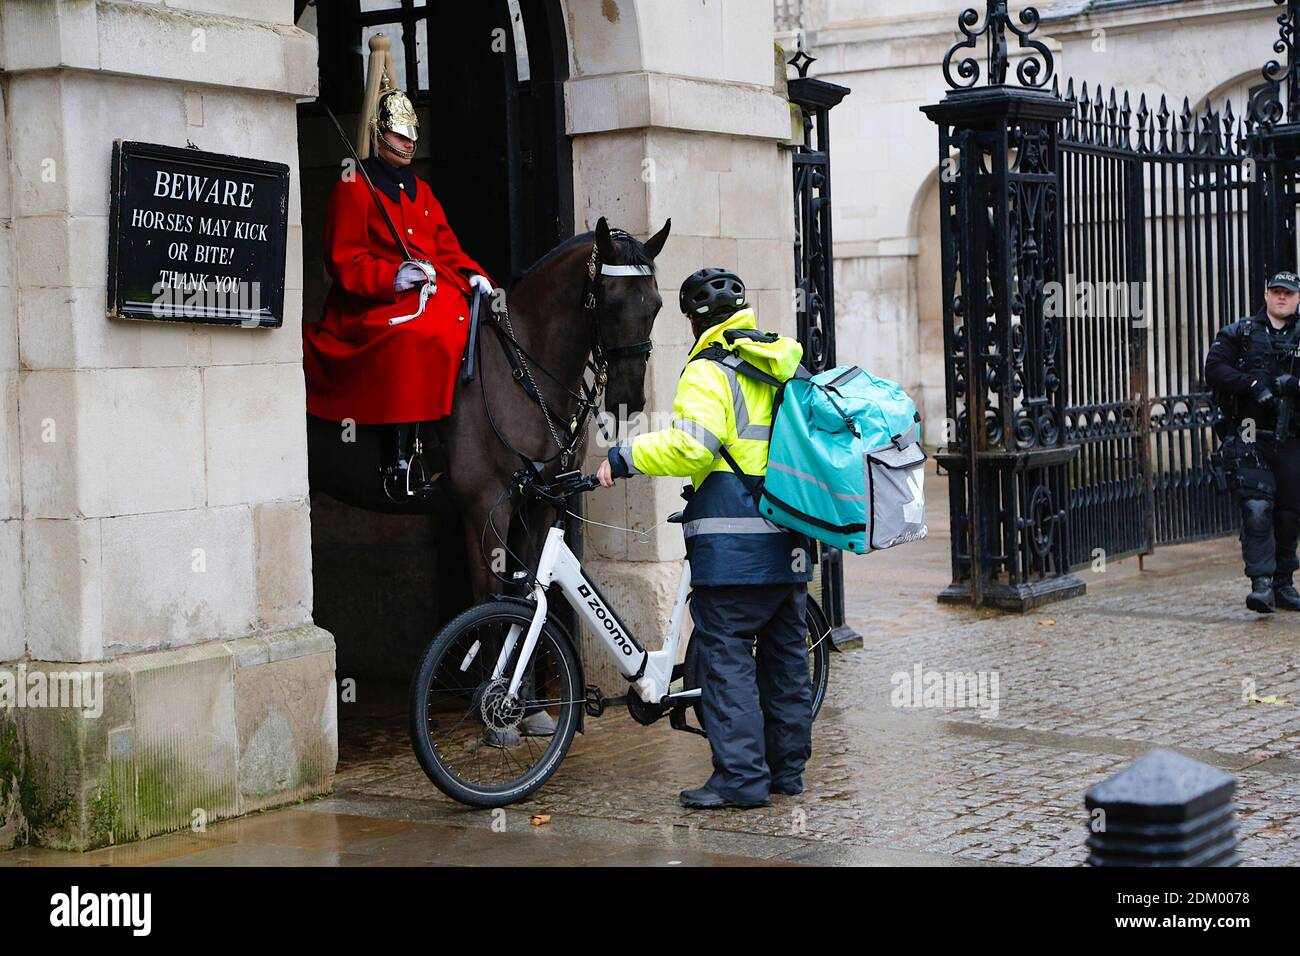 Westminster, London, UK. 16 Dec, 2020. UK Weather: Chilly and drizzly rain in the West End in London. A deliveroo delivery worker asks for directions. Photo Credit: PAL Media/Alamy Live News Stock Photo